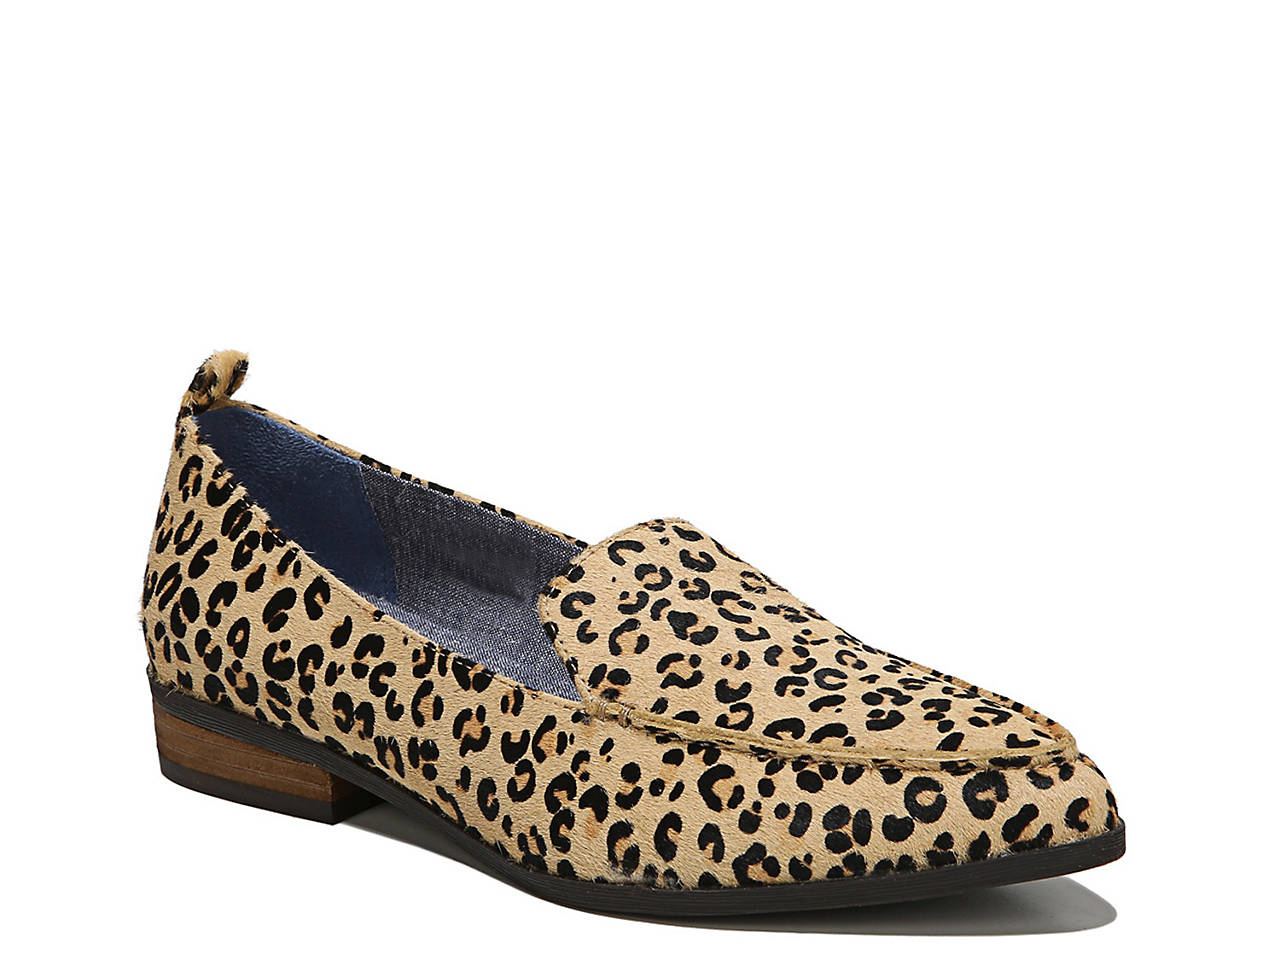 Dr. Scholl's Elegant Loafers Women's Shoes